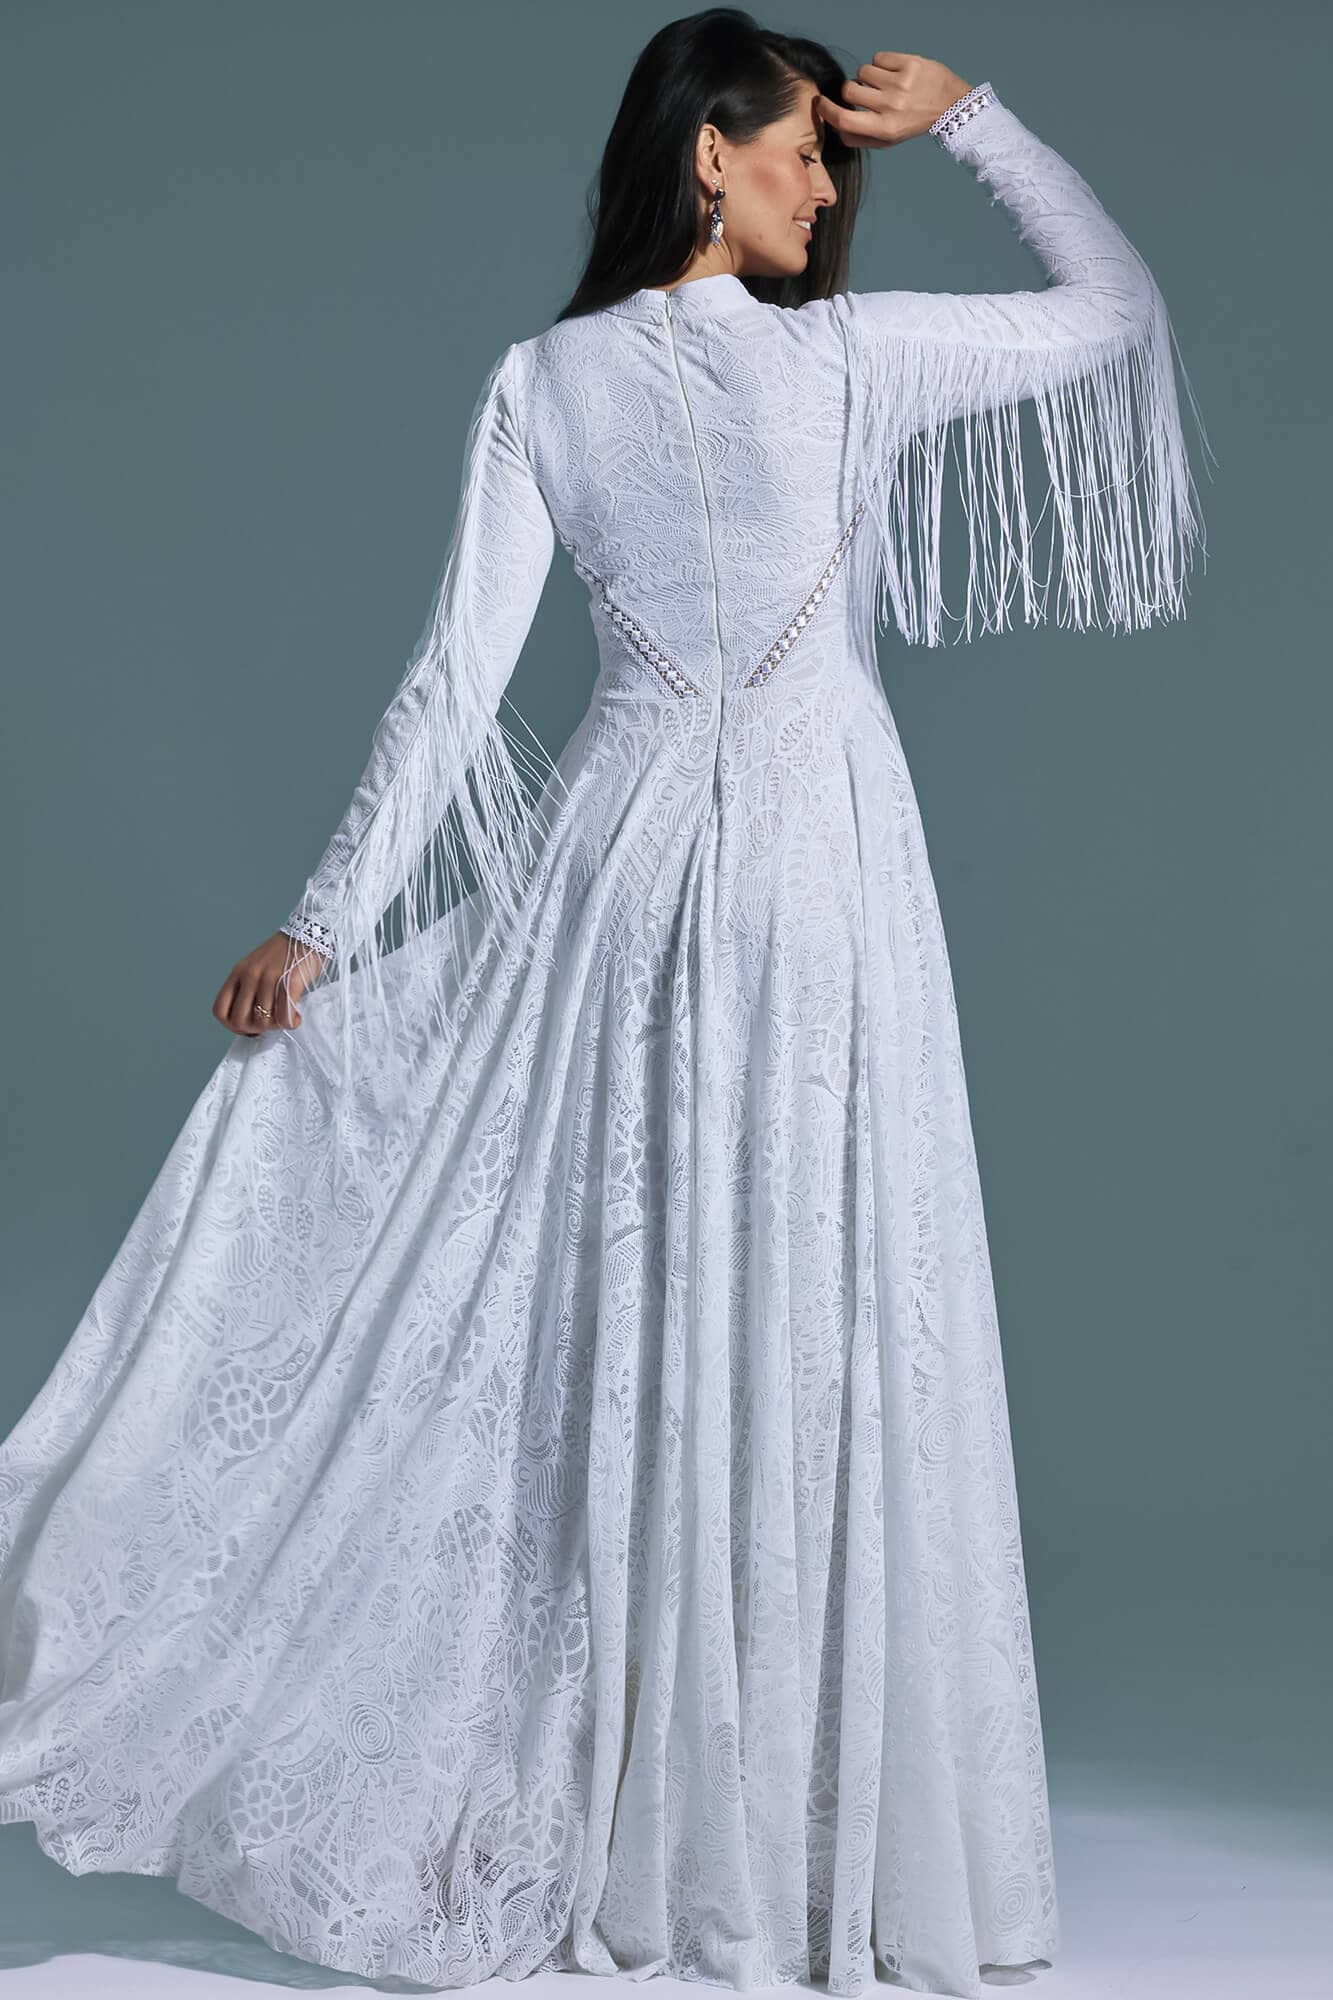 Decorated built-up long wedding dress with fringes Santorini 21